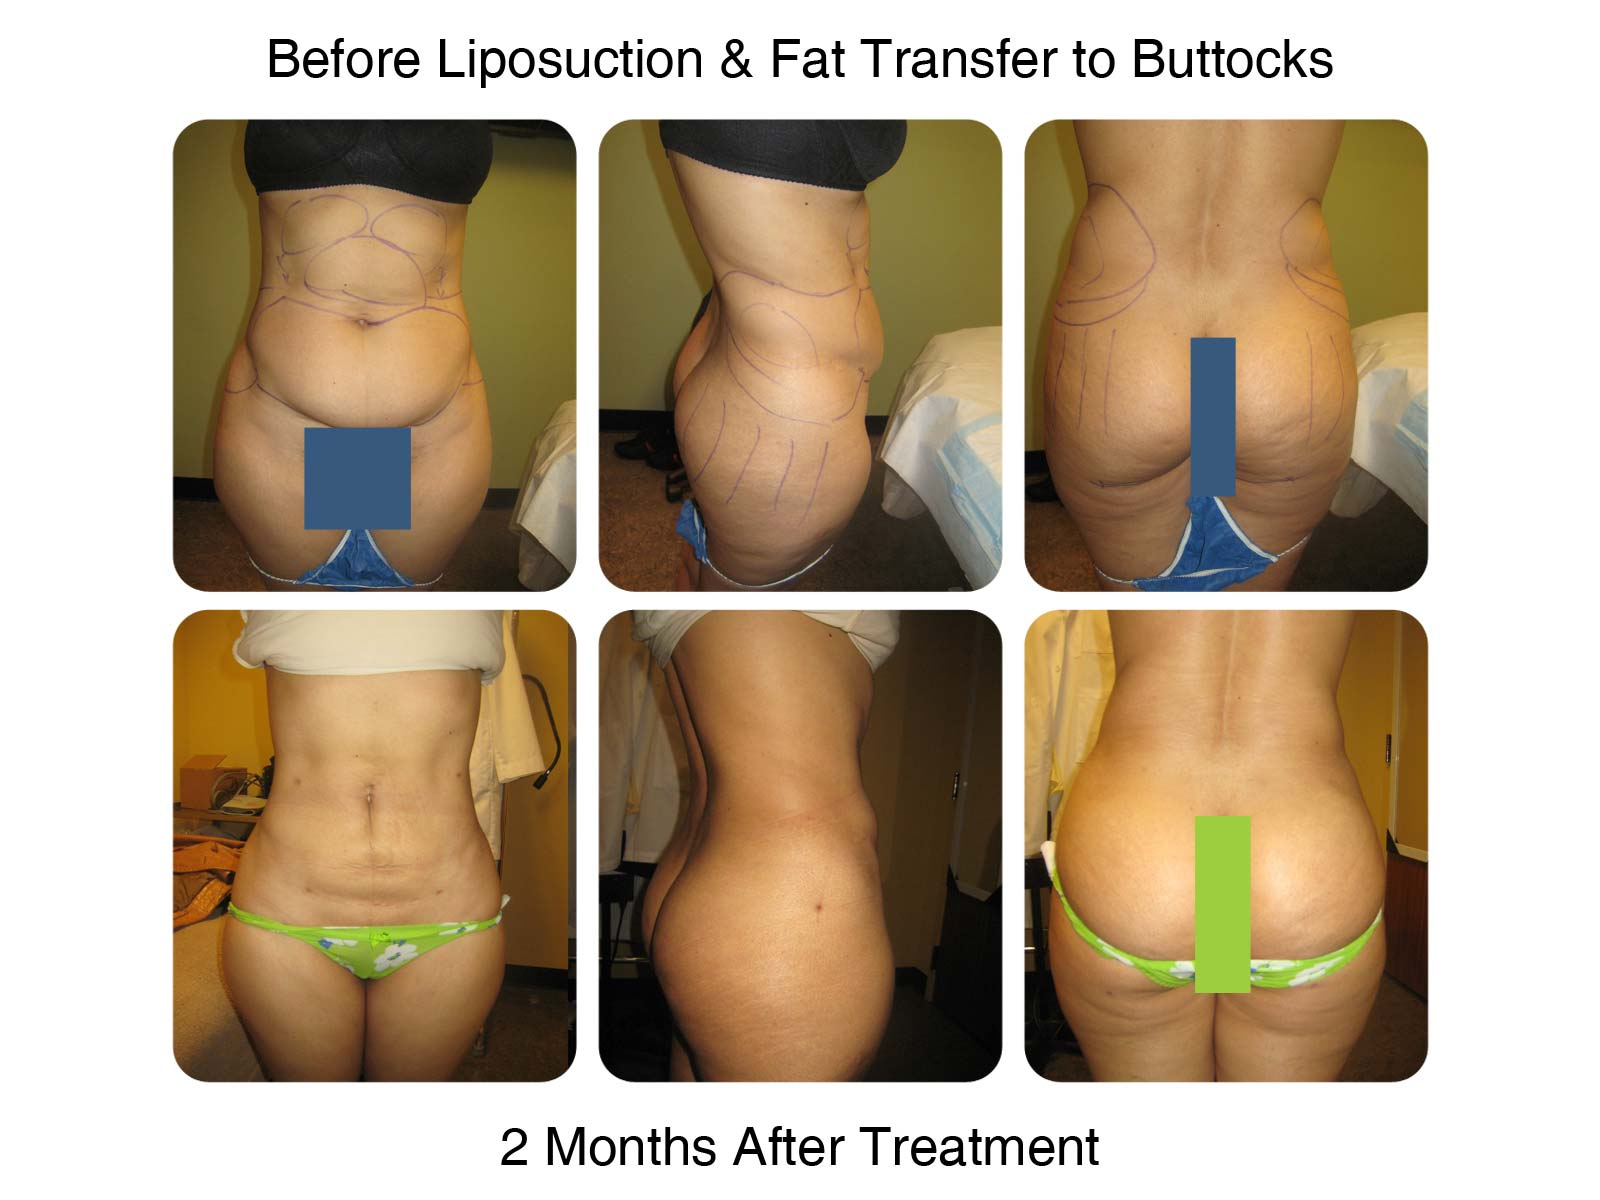 Brazilian Butt Lift Fat Transfer Before and After 5